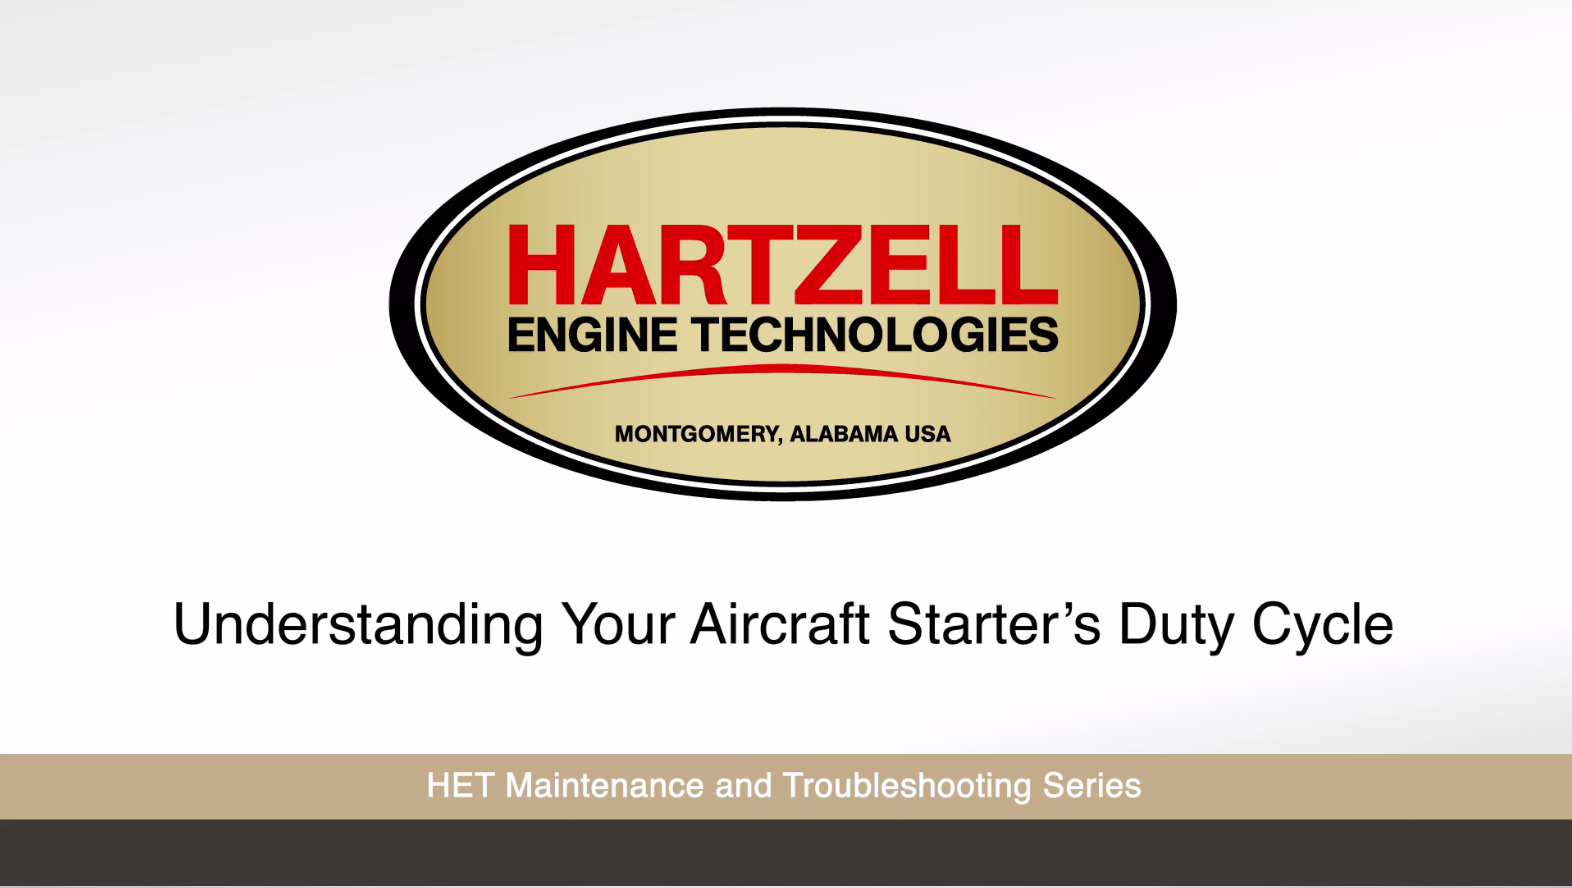 Hartzell Engine Technologies Introduces Educational Video Series to Help Pilots and Mechanics Better Understand the Operation of Key Aircraft Components